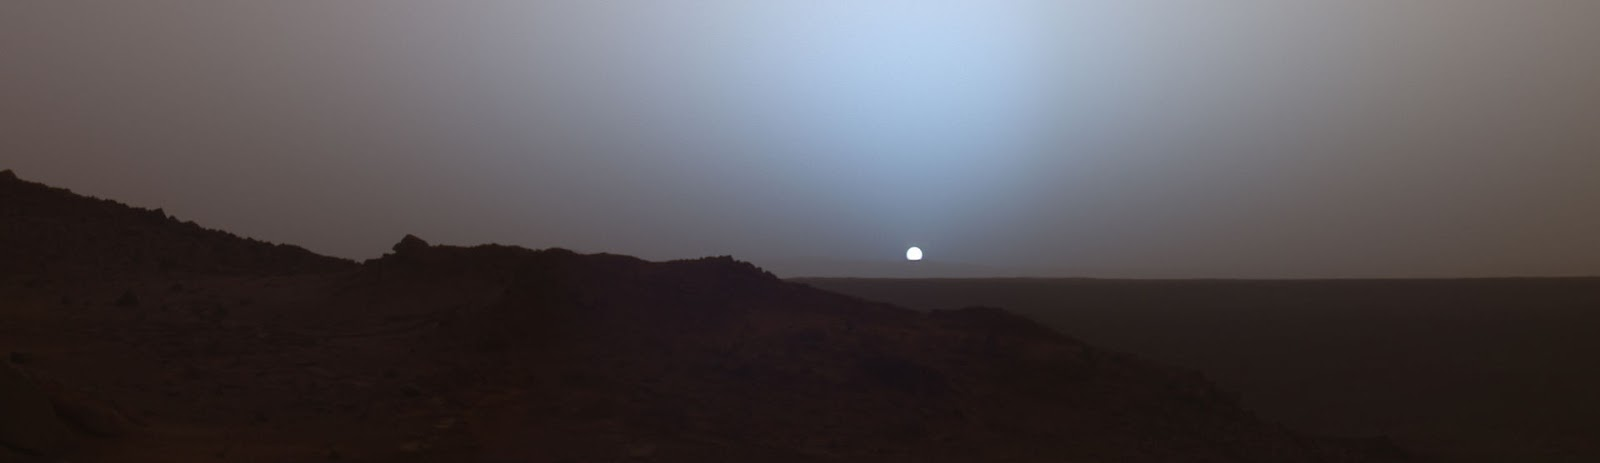 sun sets on mars nasa - photo #24